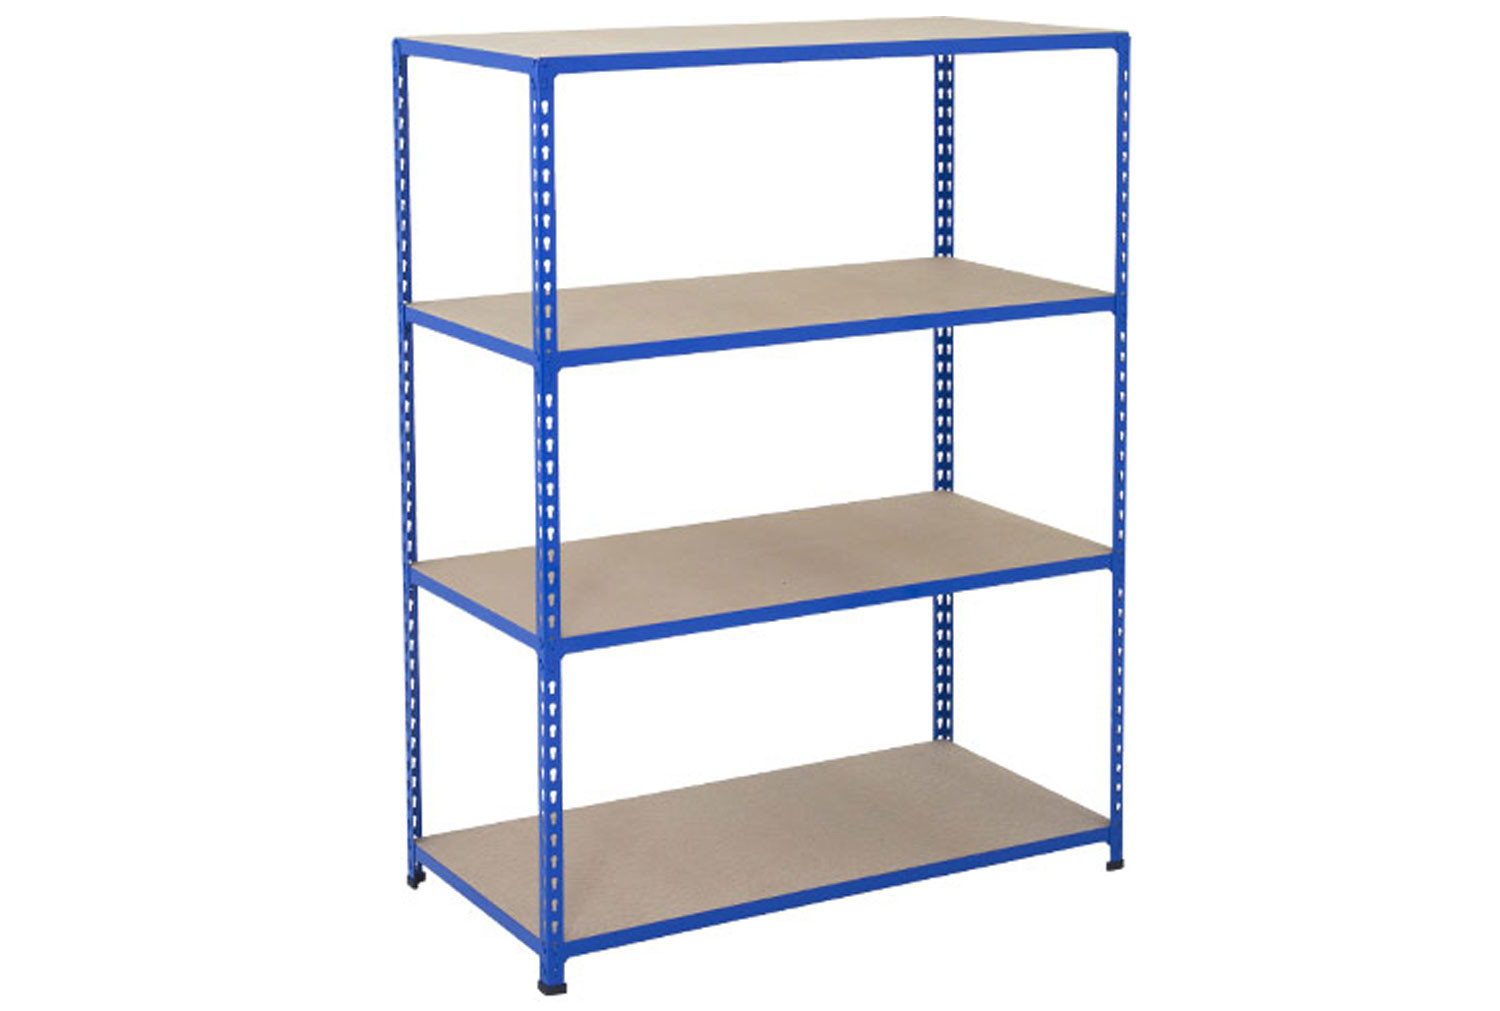 Rapid 2 Shelving With 4 Chipboard Shelves 1525wx1980h (Blue)